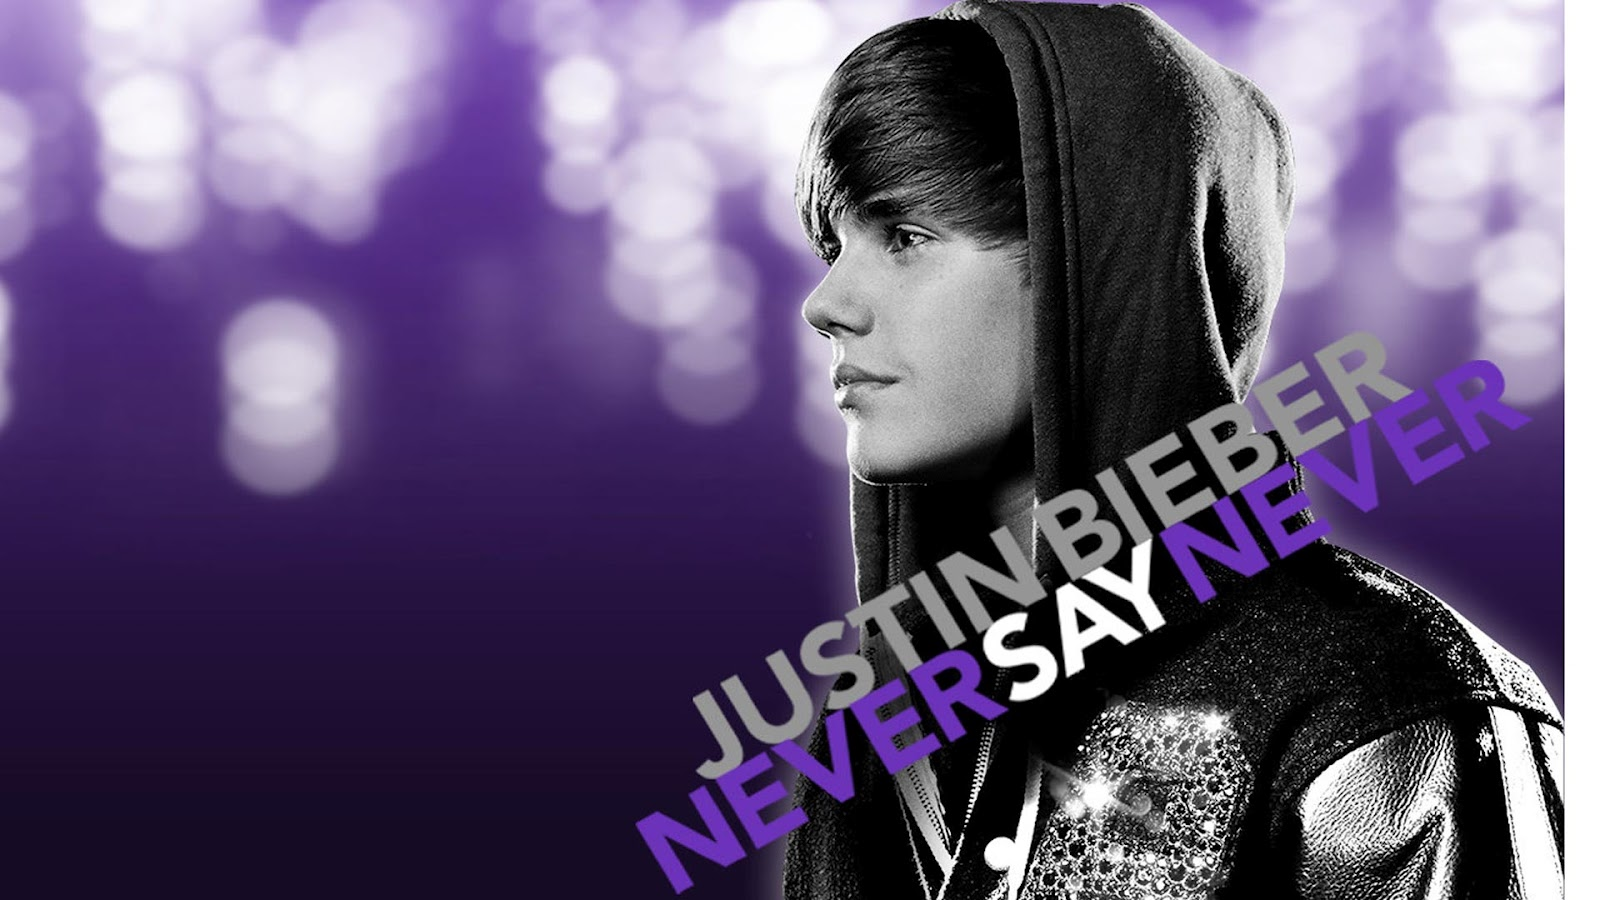 justin bieber never say never wallpapers - Justin Bieber Never Say Never (2019) Photo Gallery IMDb